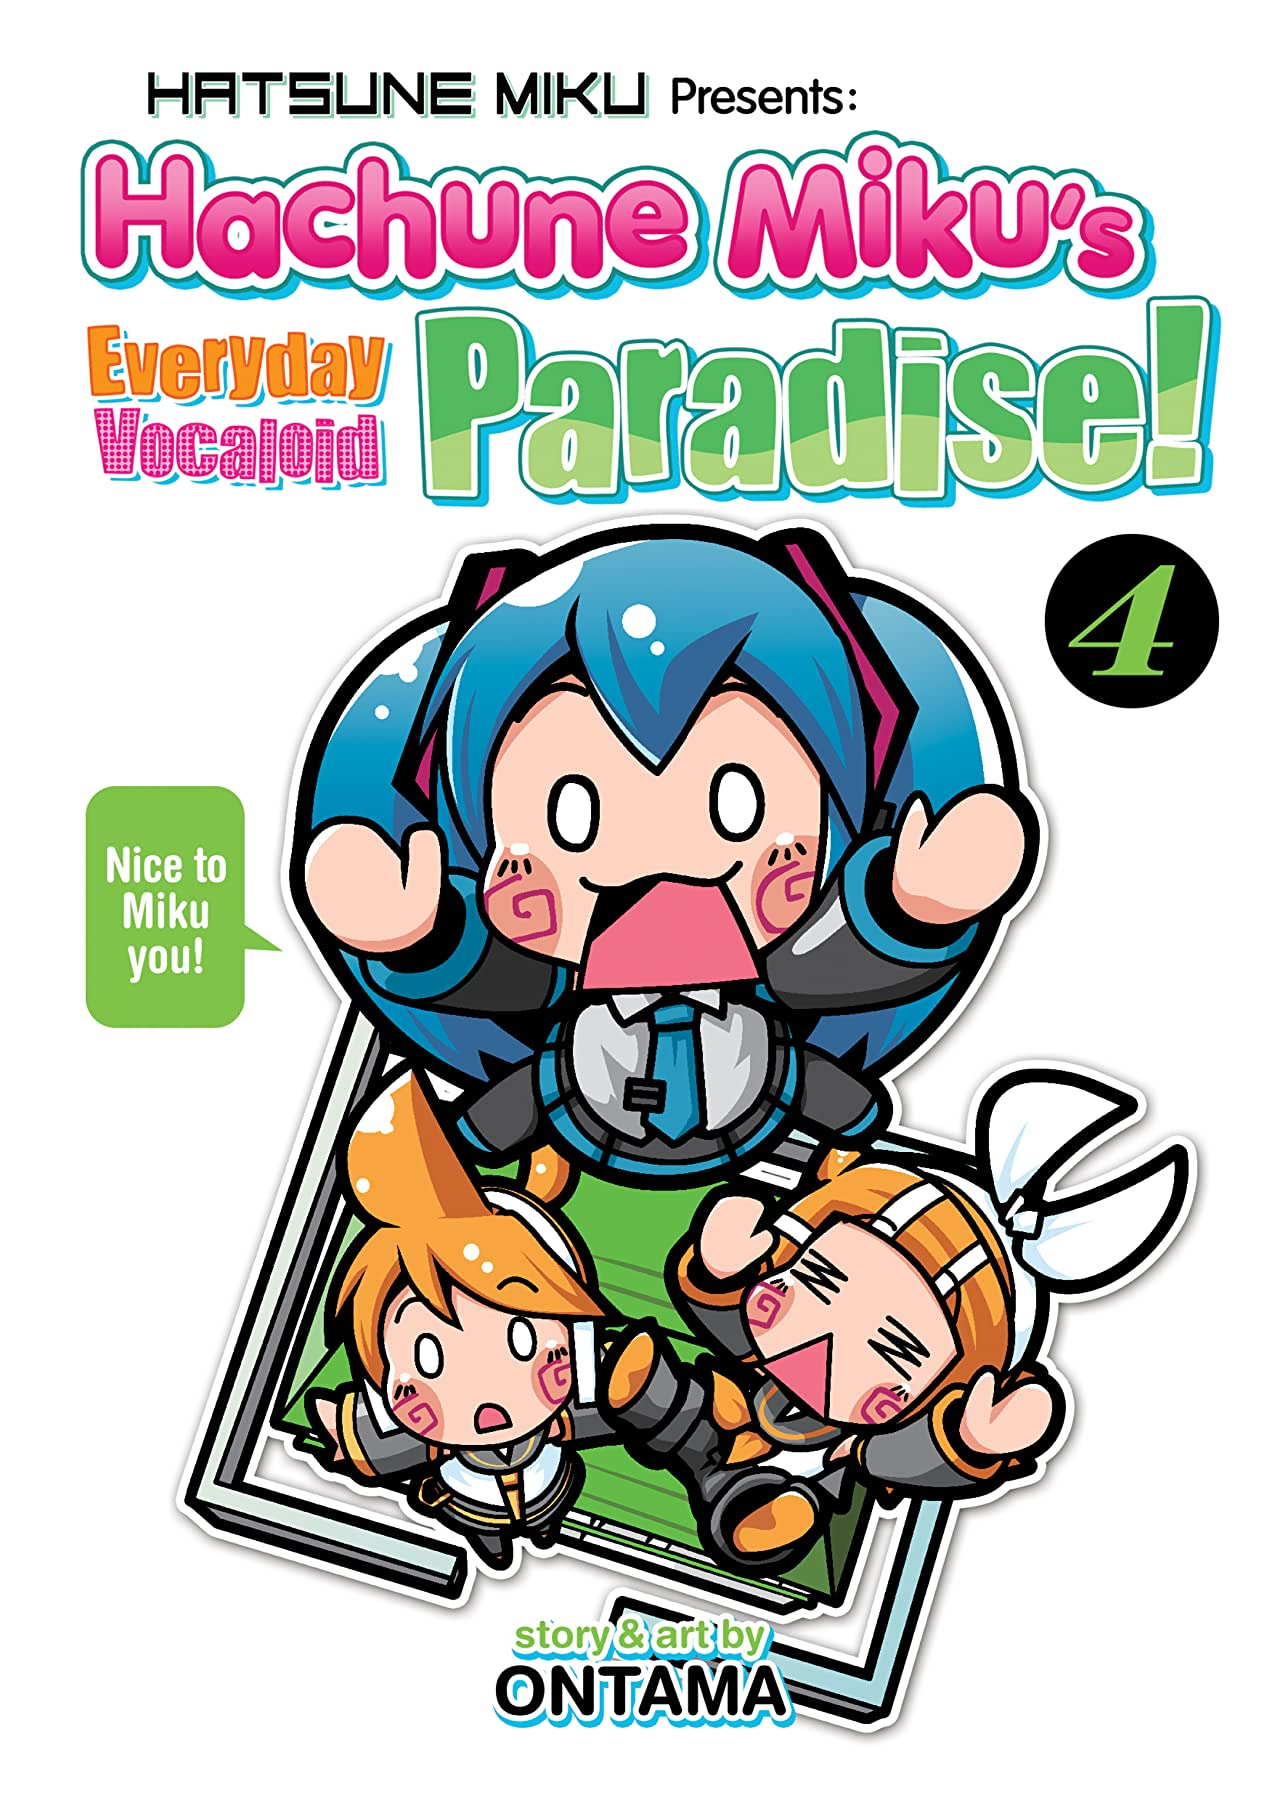 Hatsune Miku Presents: Hachune Miku's Everyday Vocaloid Paradise Vol. 4